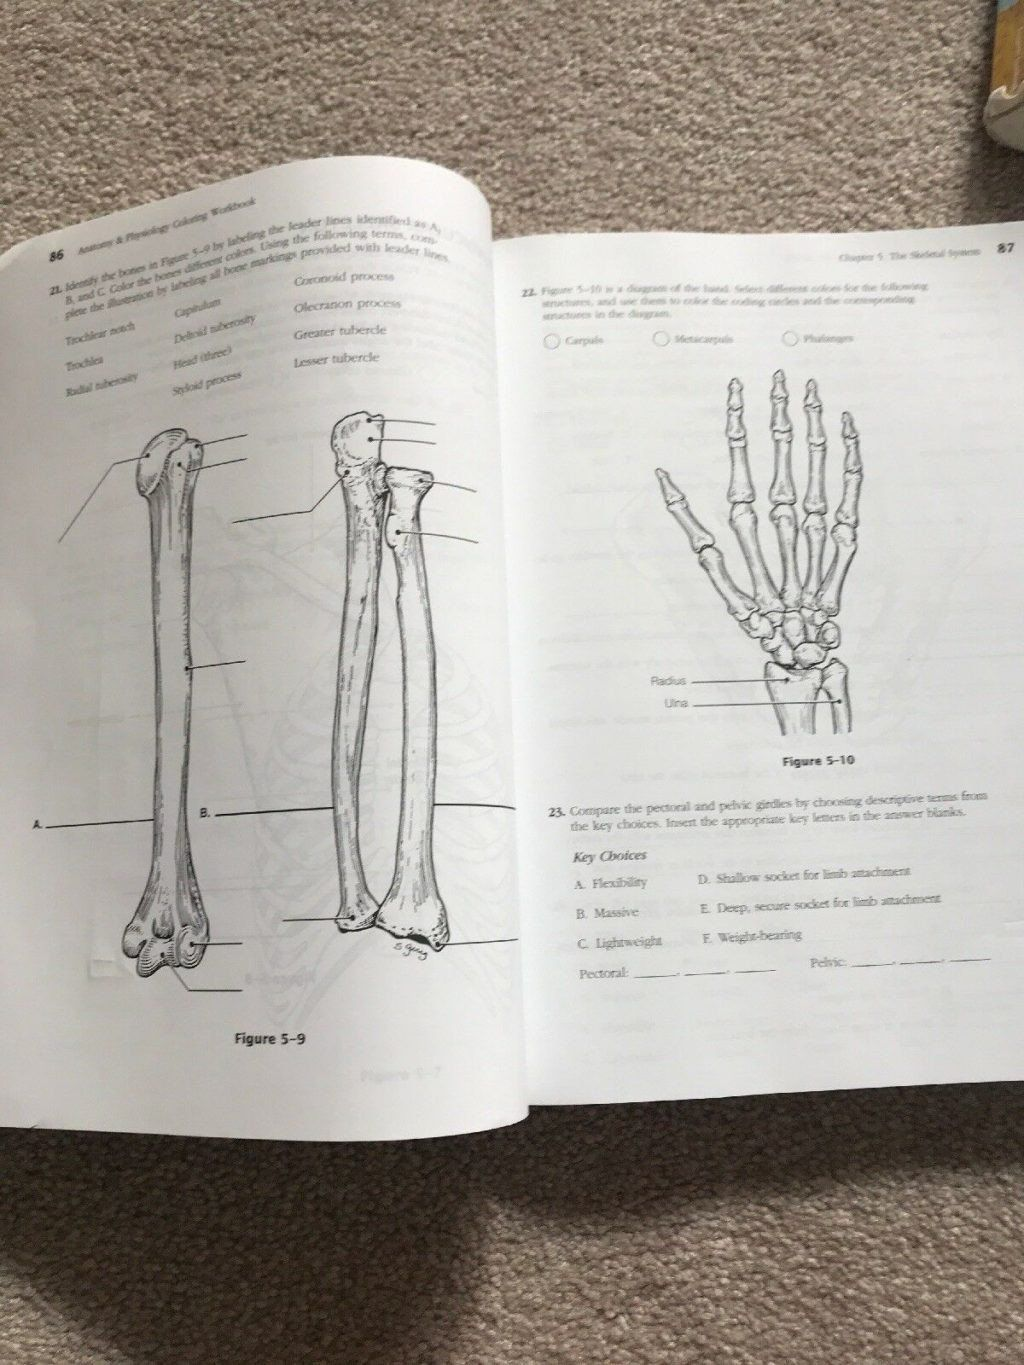 Anatomy And Physiology Coloring Workbook Answer Key Awesome Coloring Book World Fantastic Ana Anatomy Coloring Book Coloring Pages Inspirational Coloring Pages